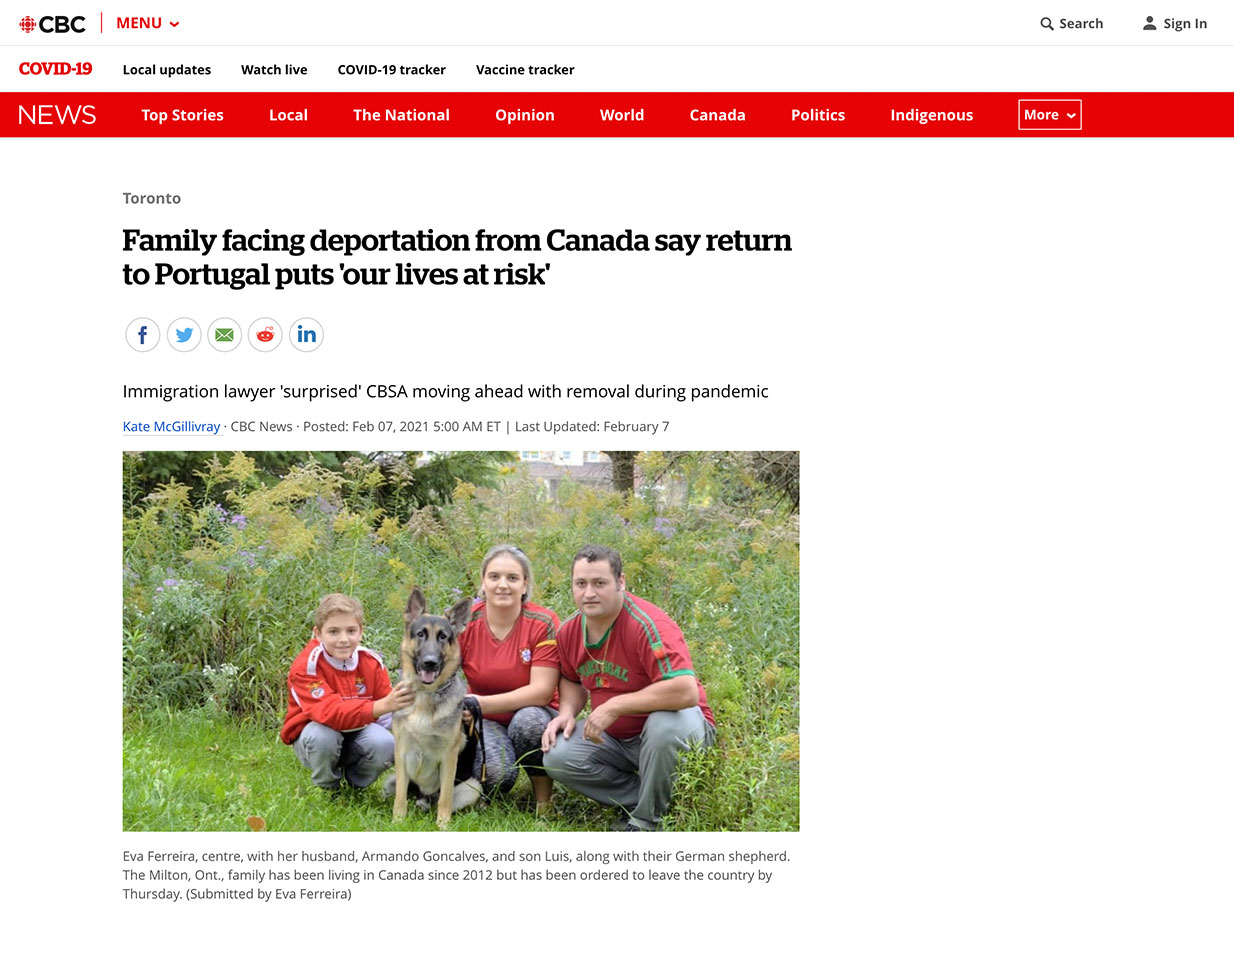 Jackie Swaisland - Family facing deportation from Canada say return to Portugal puts 'our lives at risk'